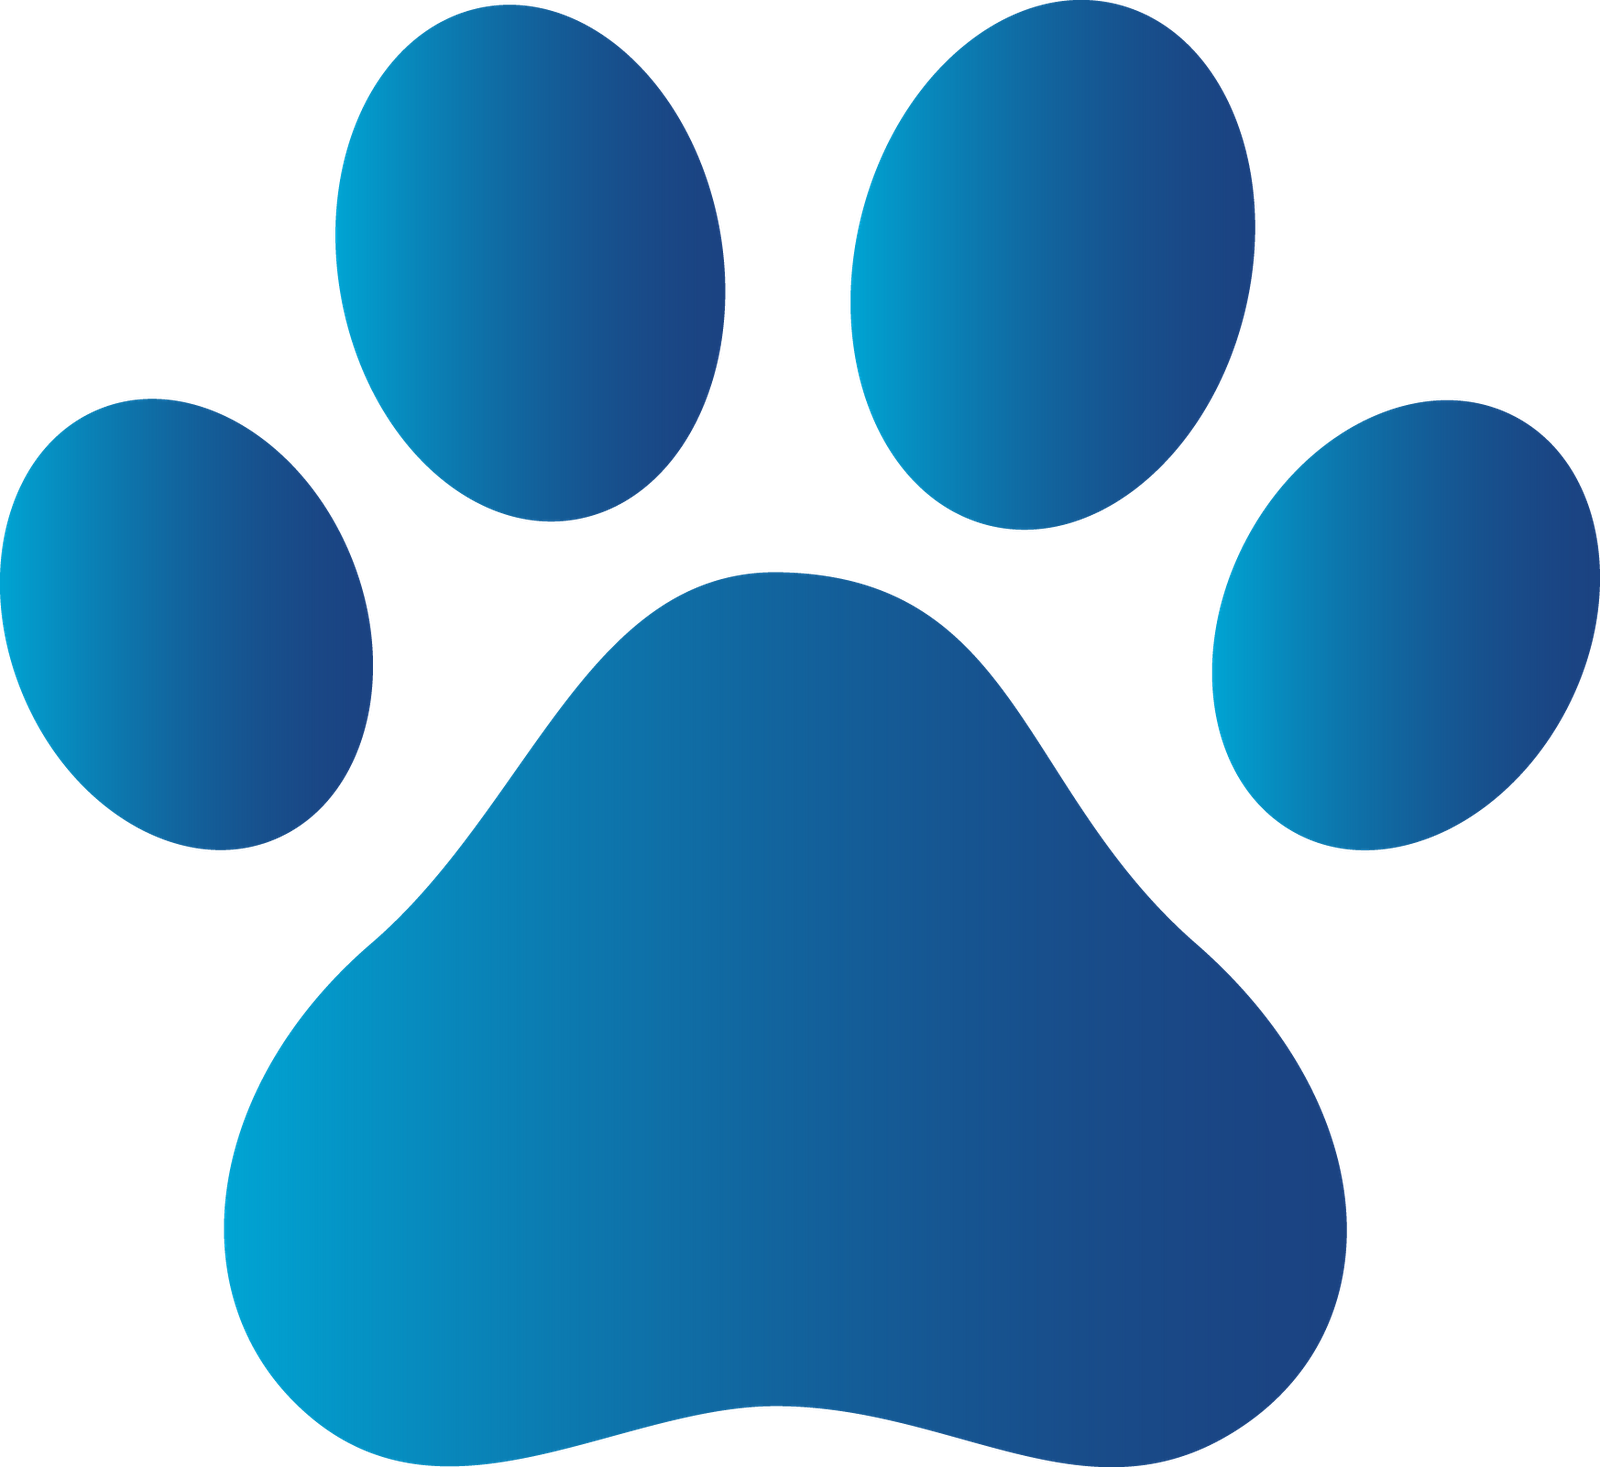 logo clipart png